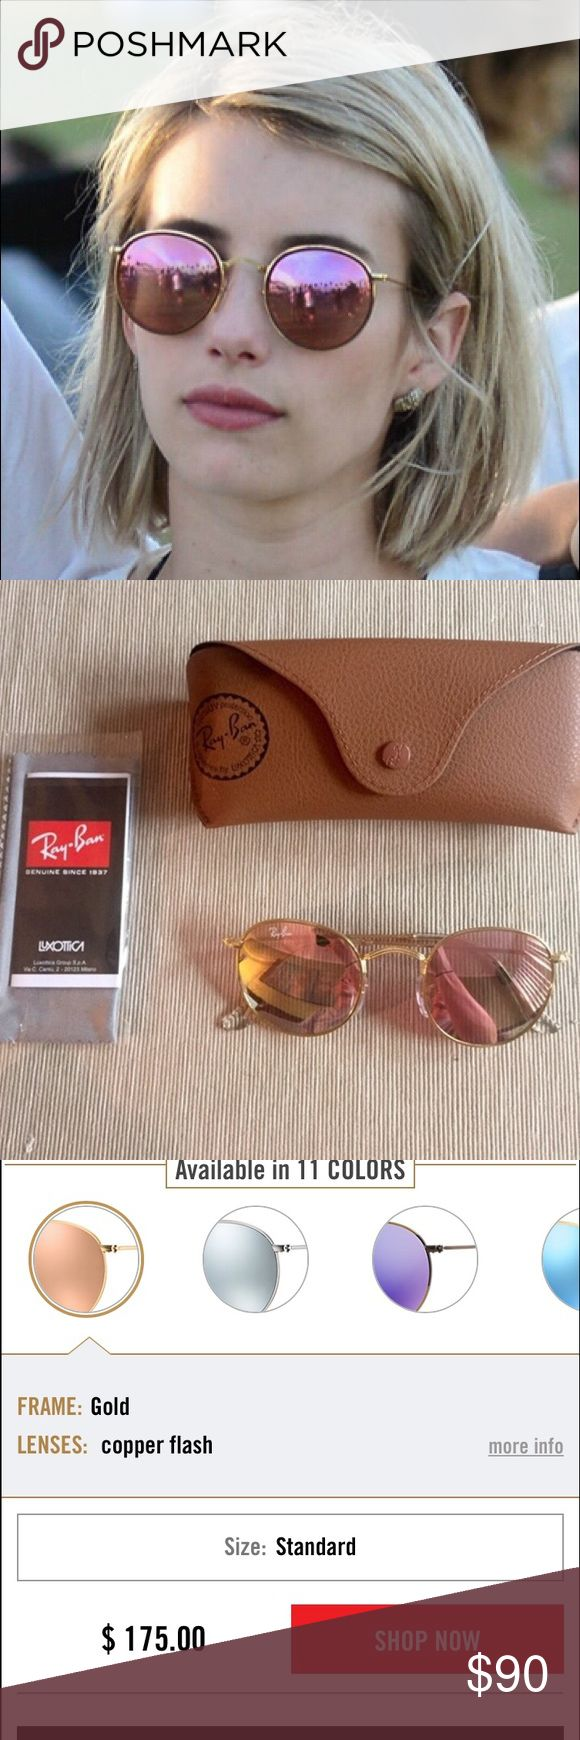 Round Ray Bans w Pink Lens Bought these from another Posher, brand new! Priced to sell Ray-Ban Accessories Sunglasses